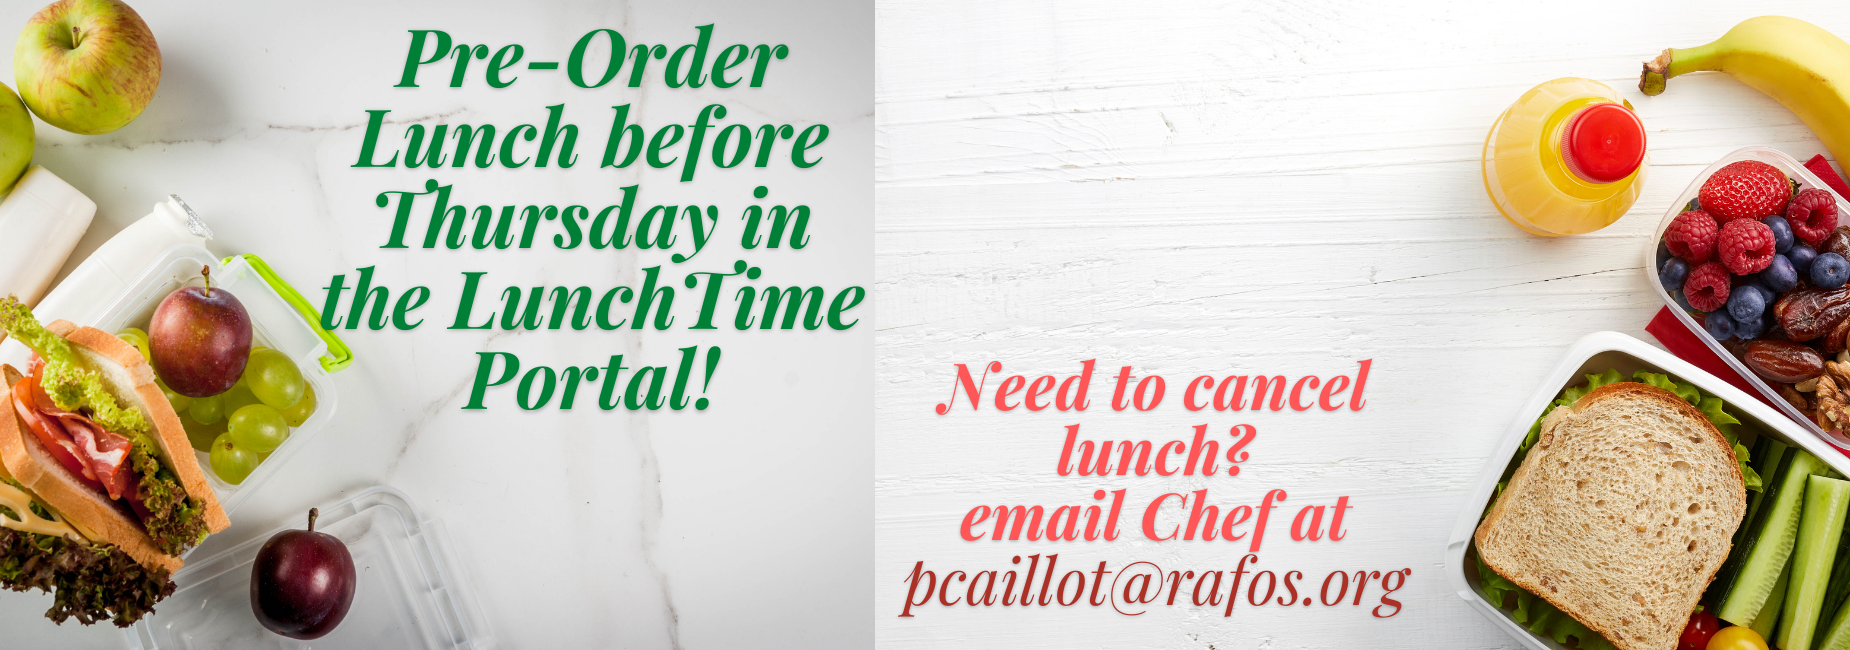 preorder lunch this thursday in the lunch portal for lunch next week